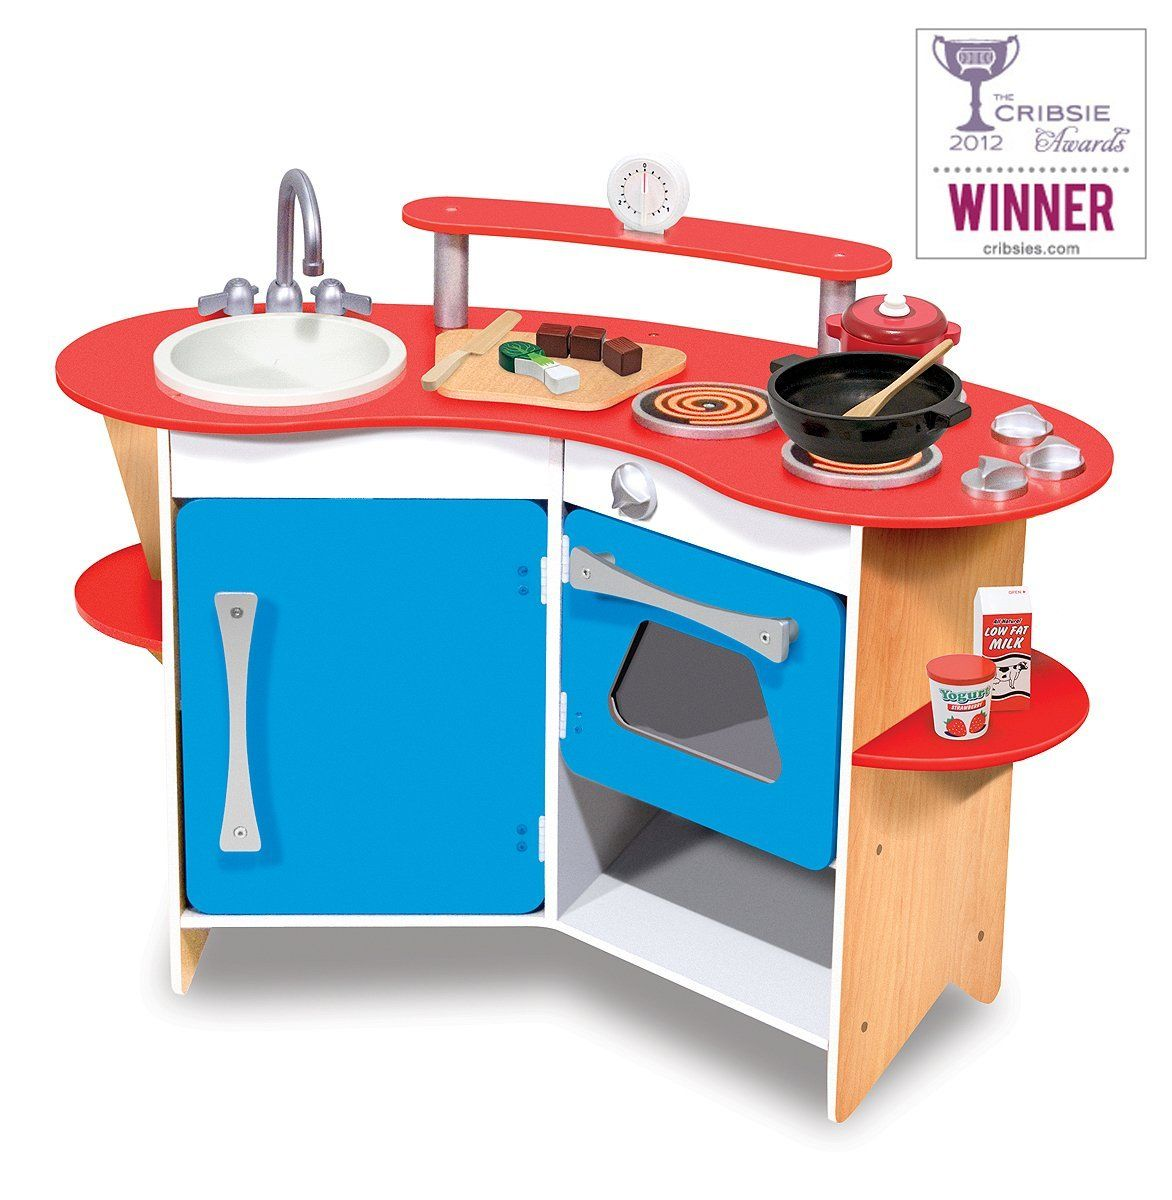 Melissa & Doug Cooks Corner Wooden Kitchen Removable sink and faucet ...